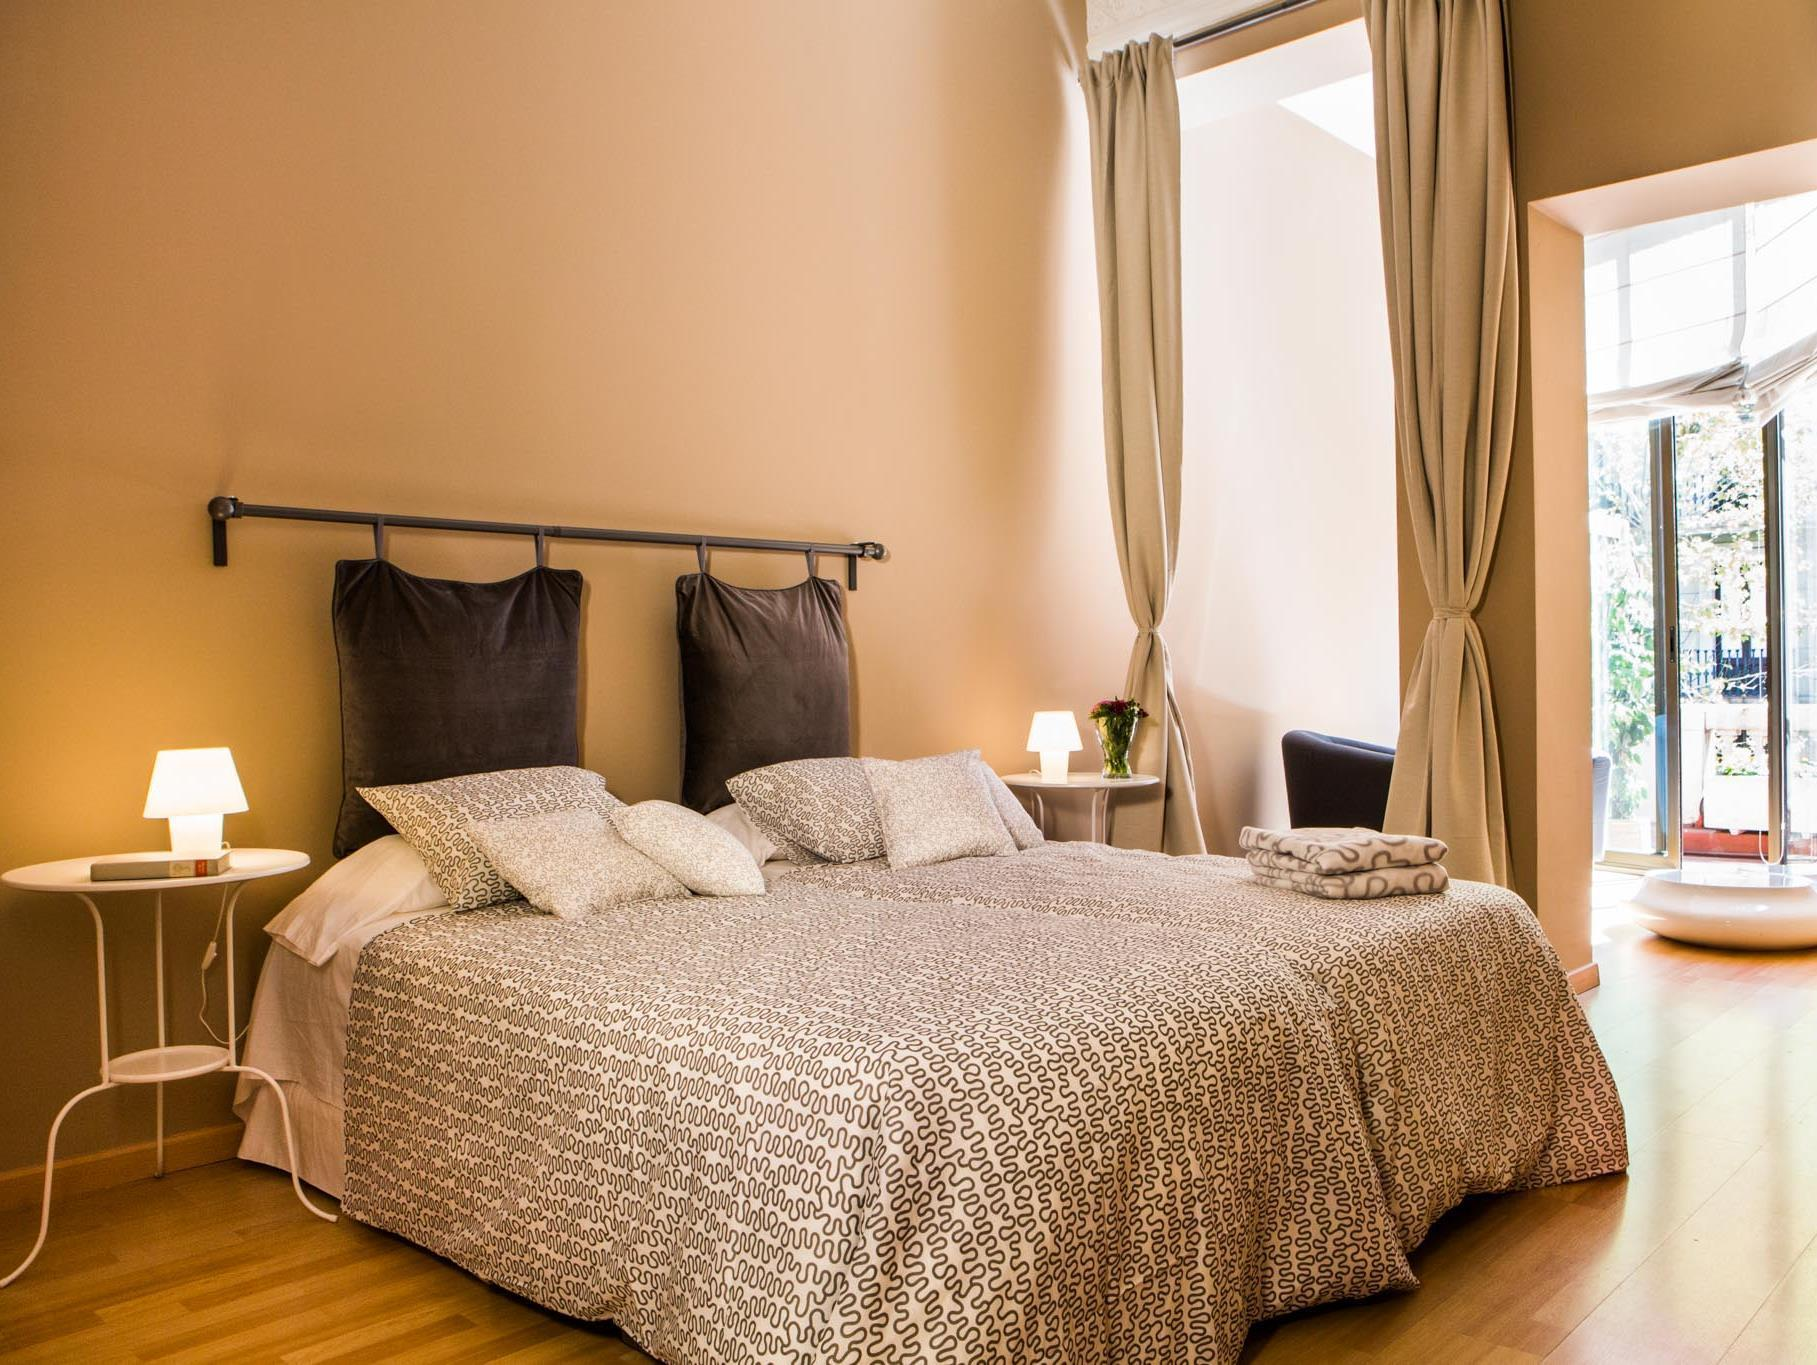 Habitació Doble amb Llit Supletori i Bany Privat (Double Room with Extra Bed and private bathroom)